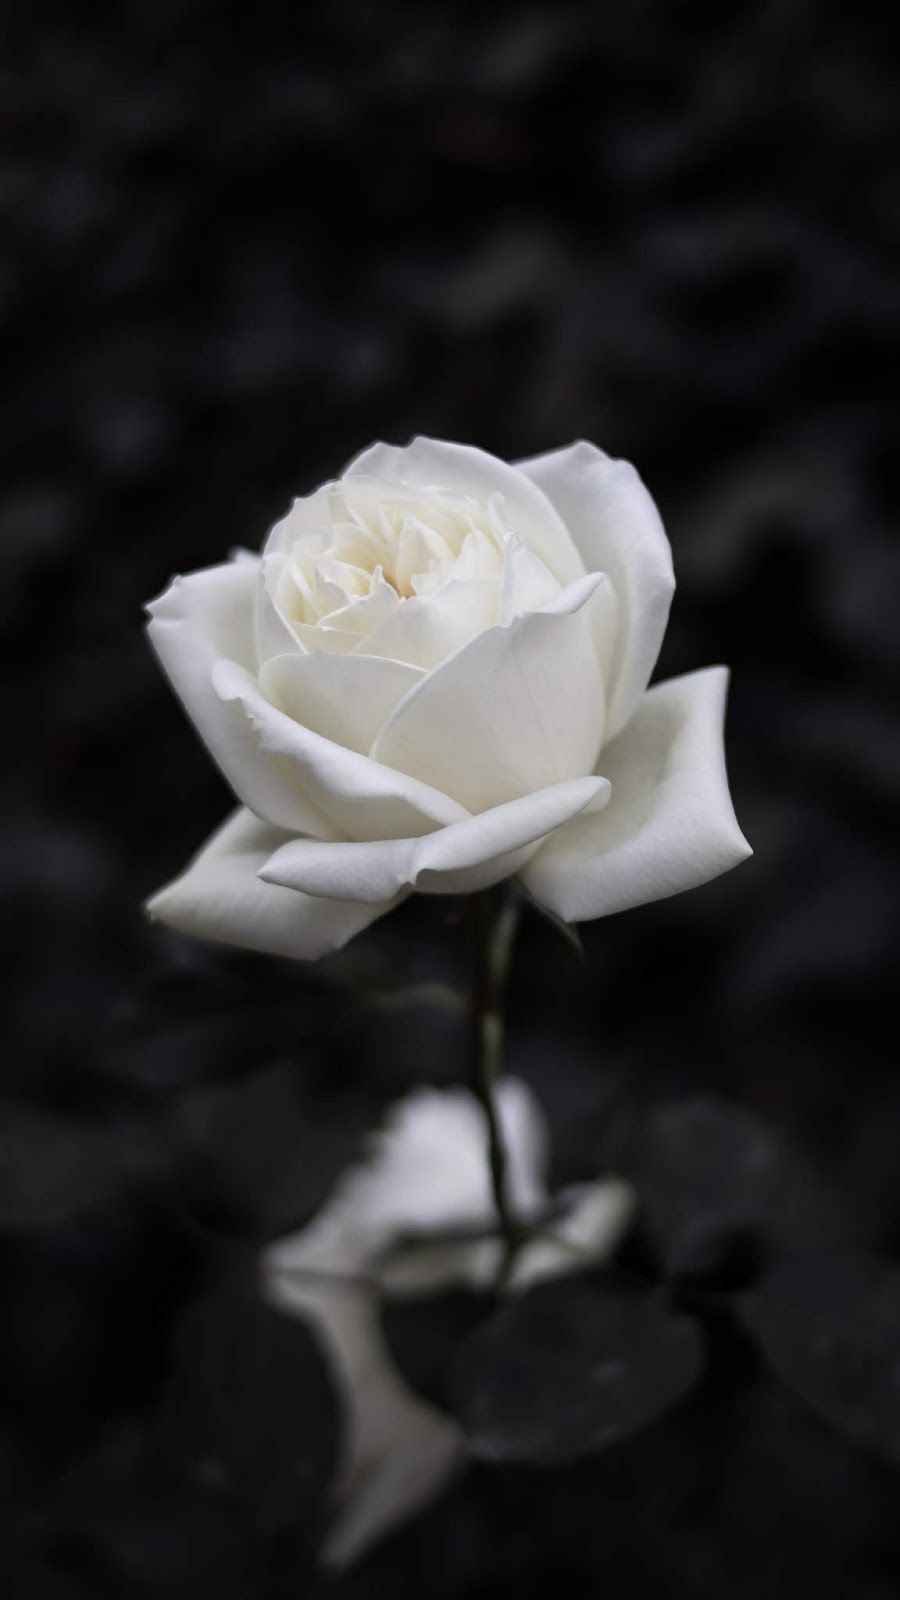 White Rose Aesthetic Wallpapers Top Free White Rose Aesthetic Backgrounds Wallpaperaccess